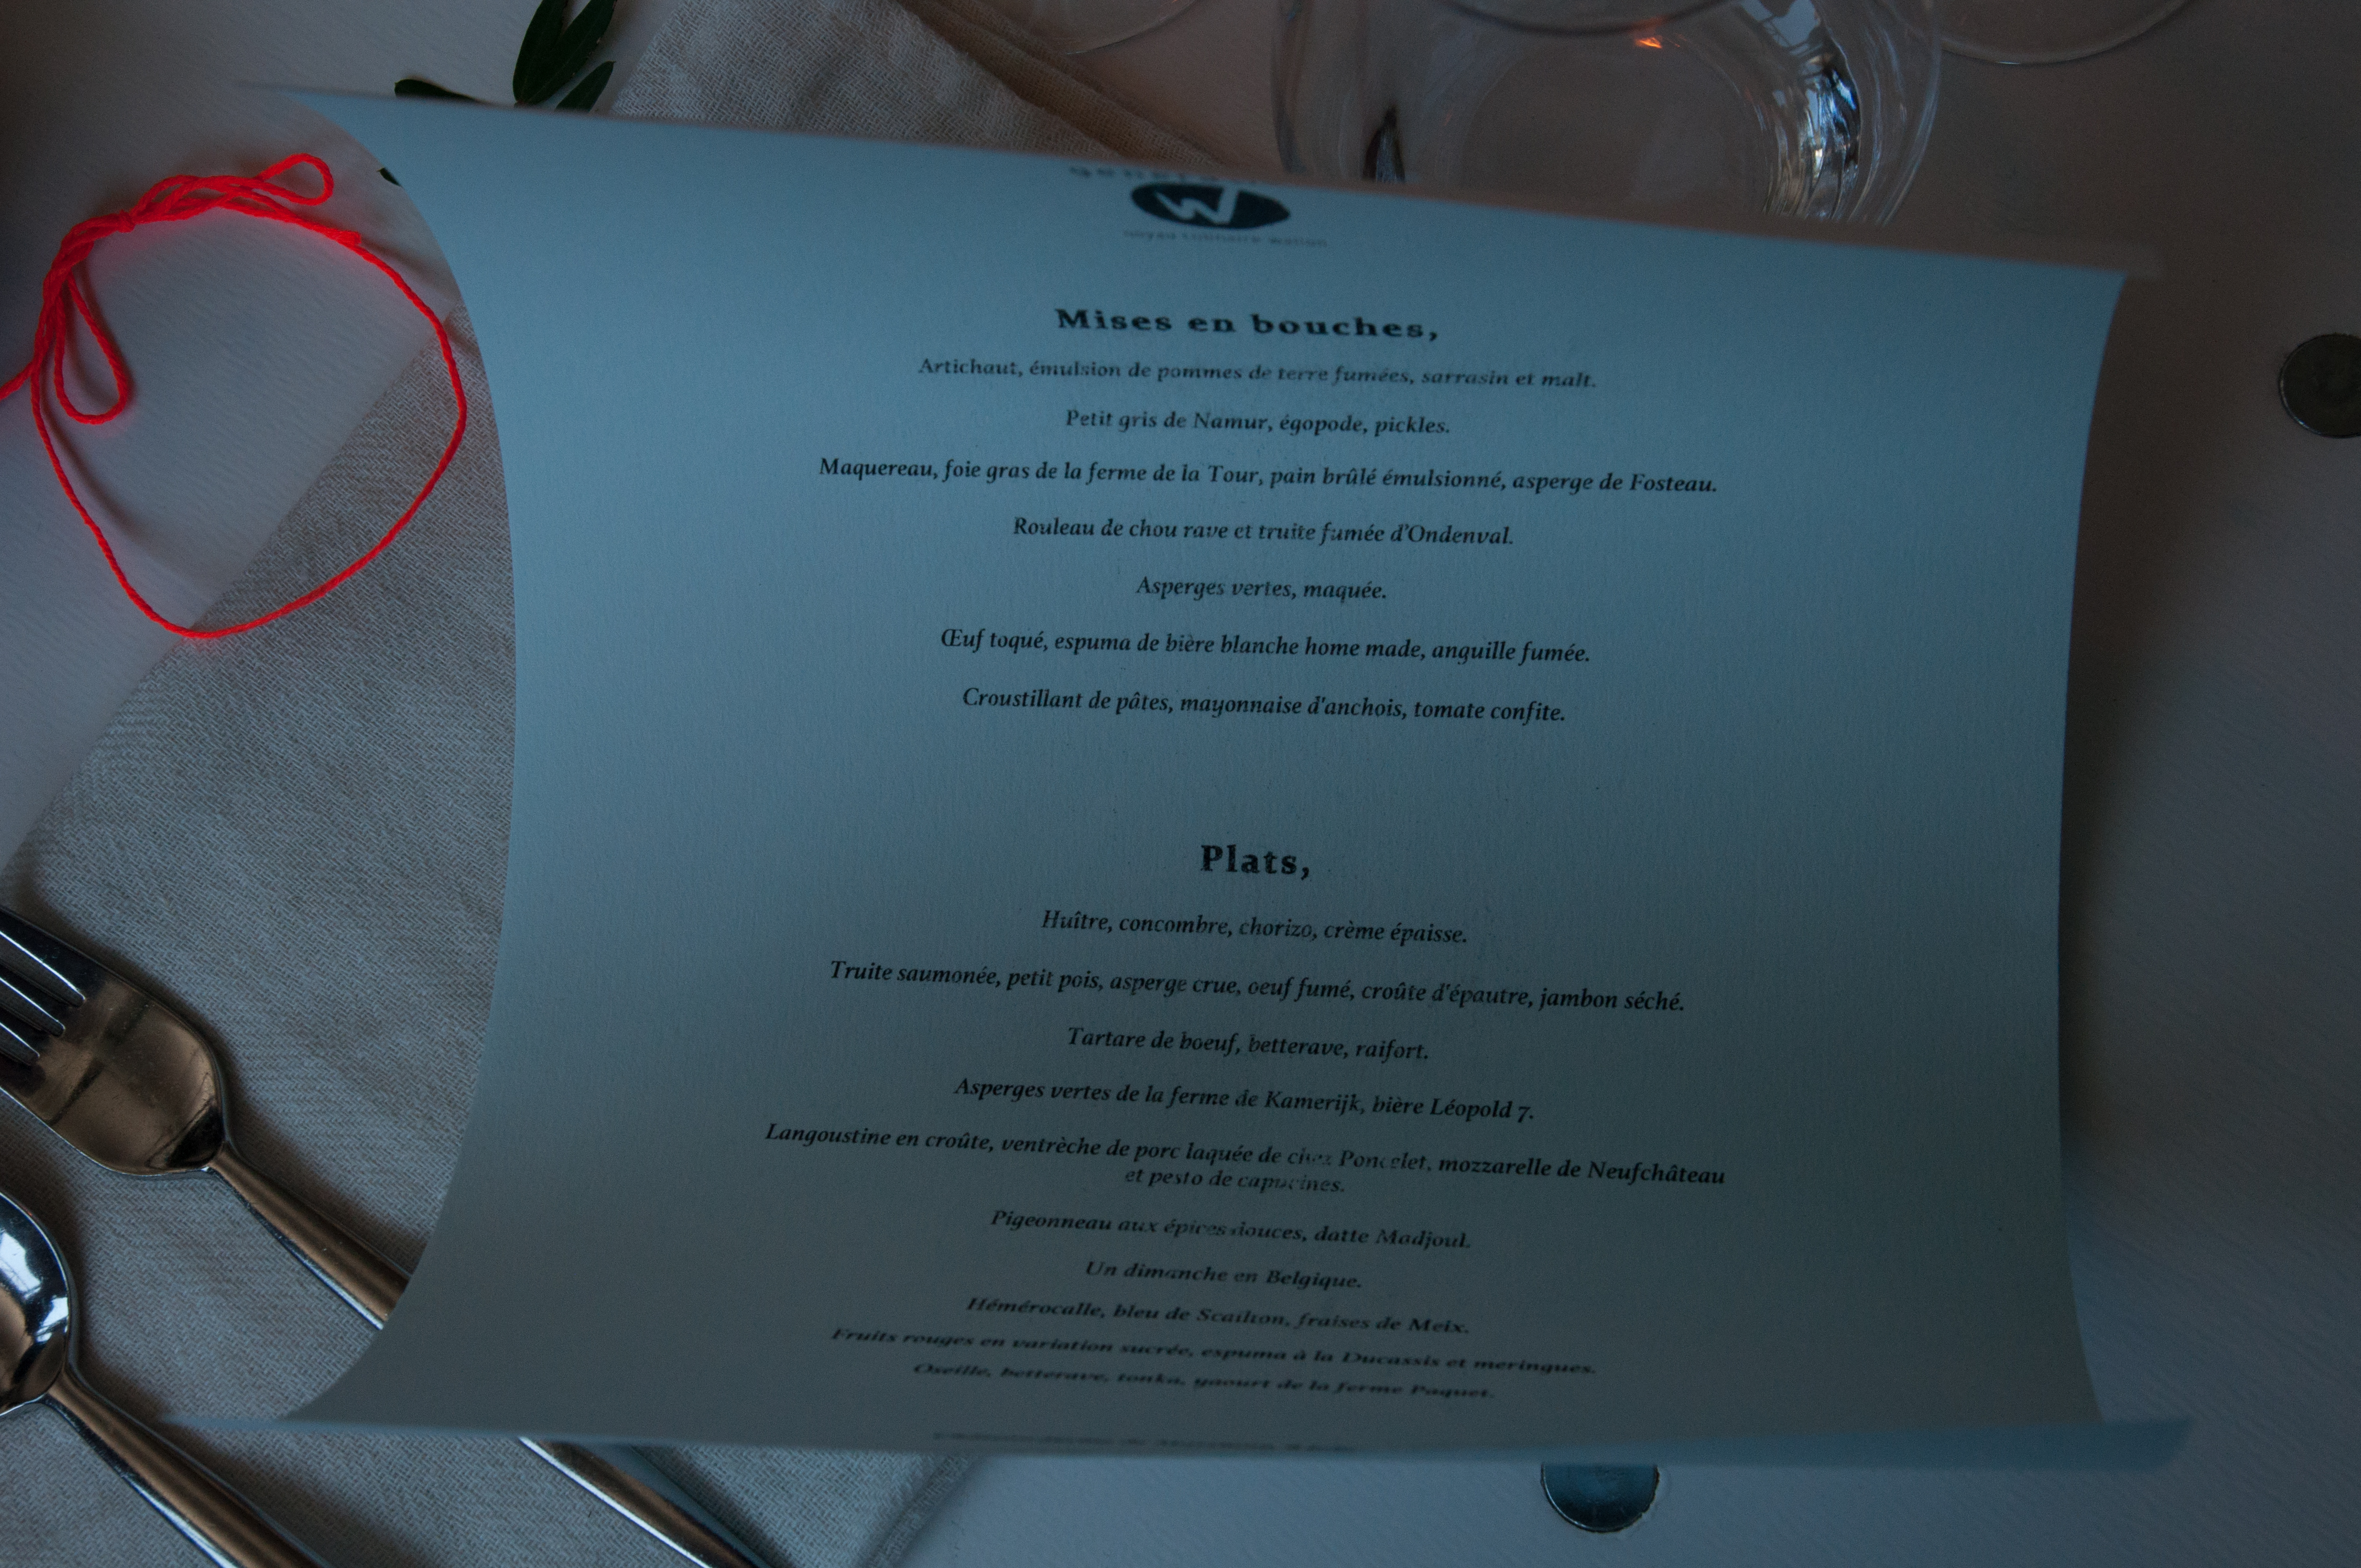 Le menu, In situ